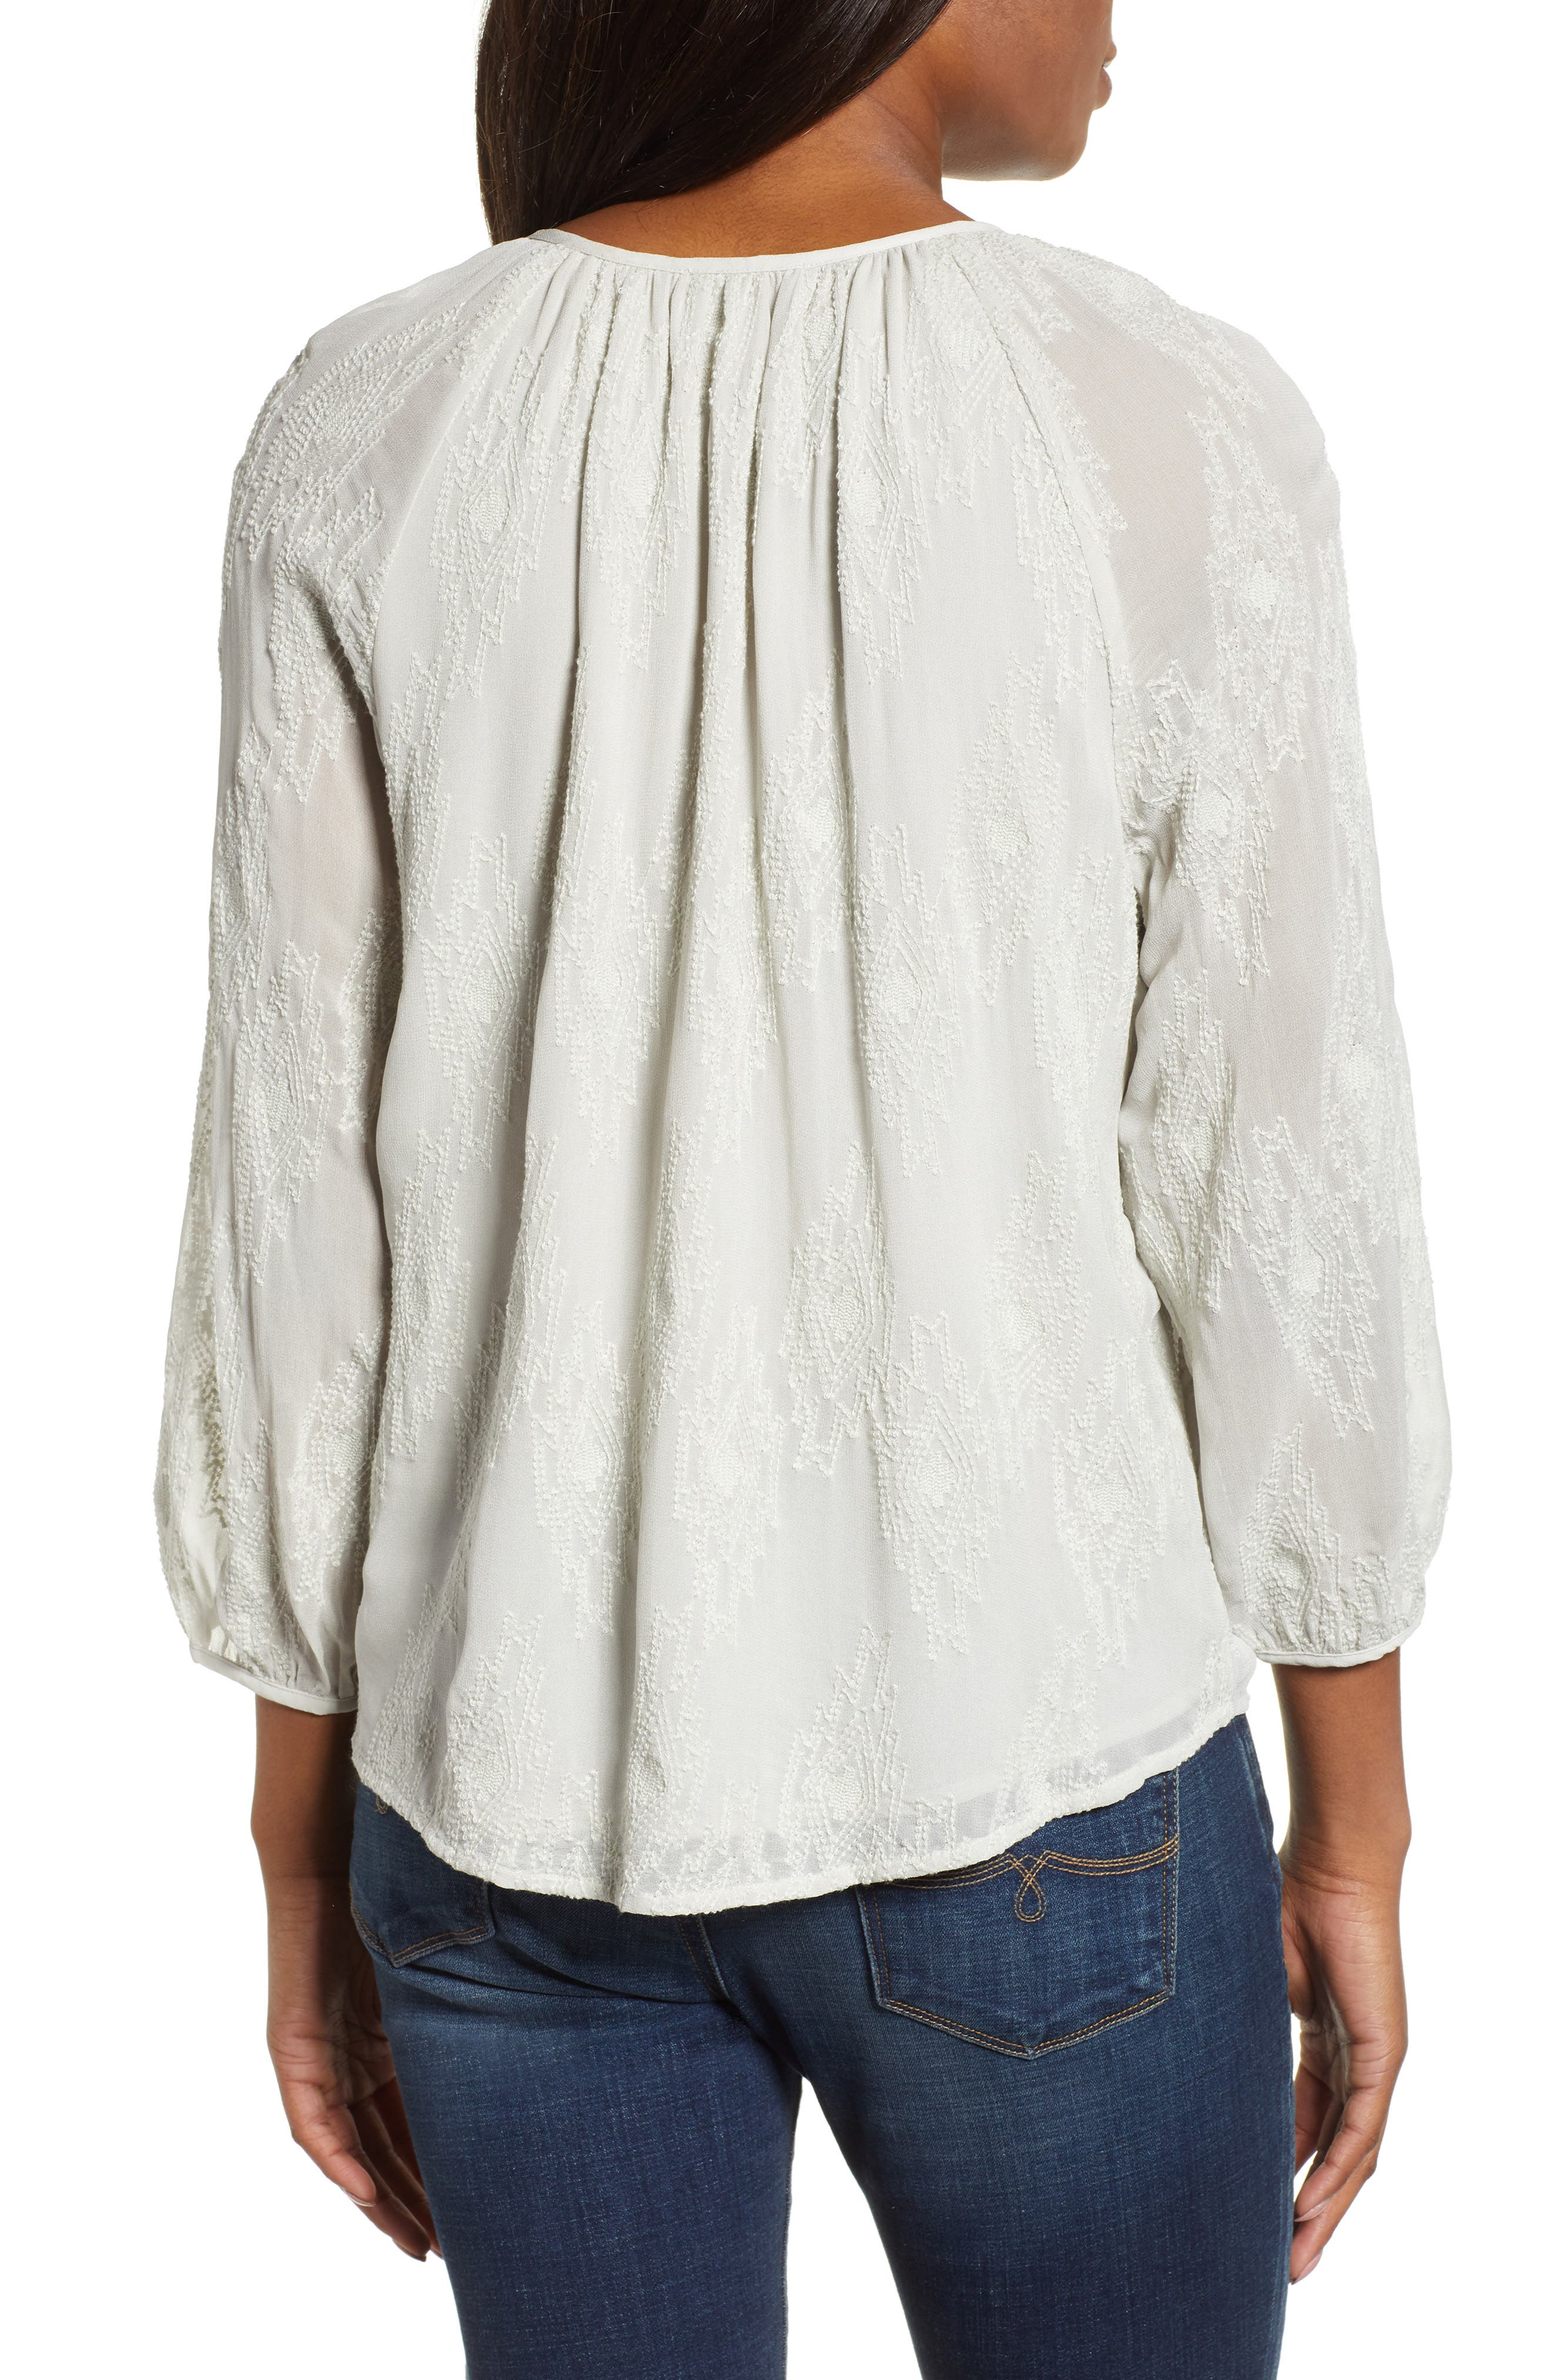 LUCKY BRAND, Geo Embroidered Top, Alternate thumbnail 2, color, PALE BLUE